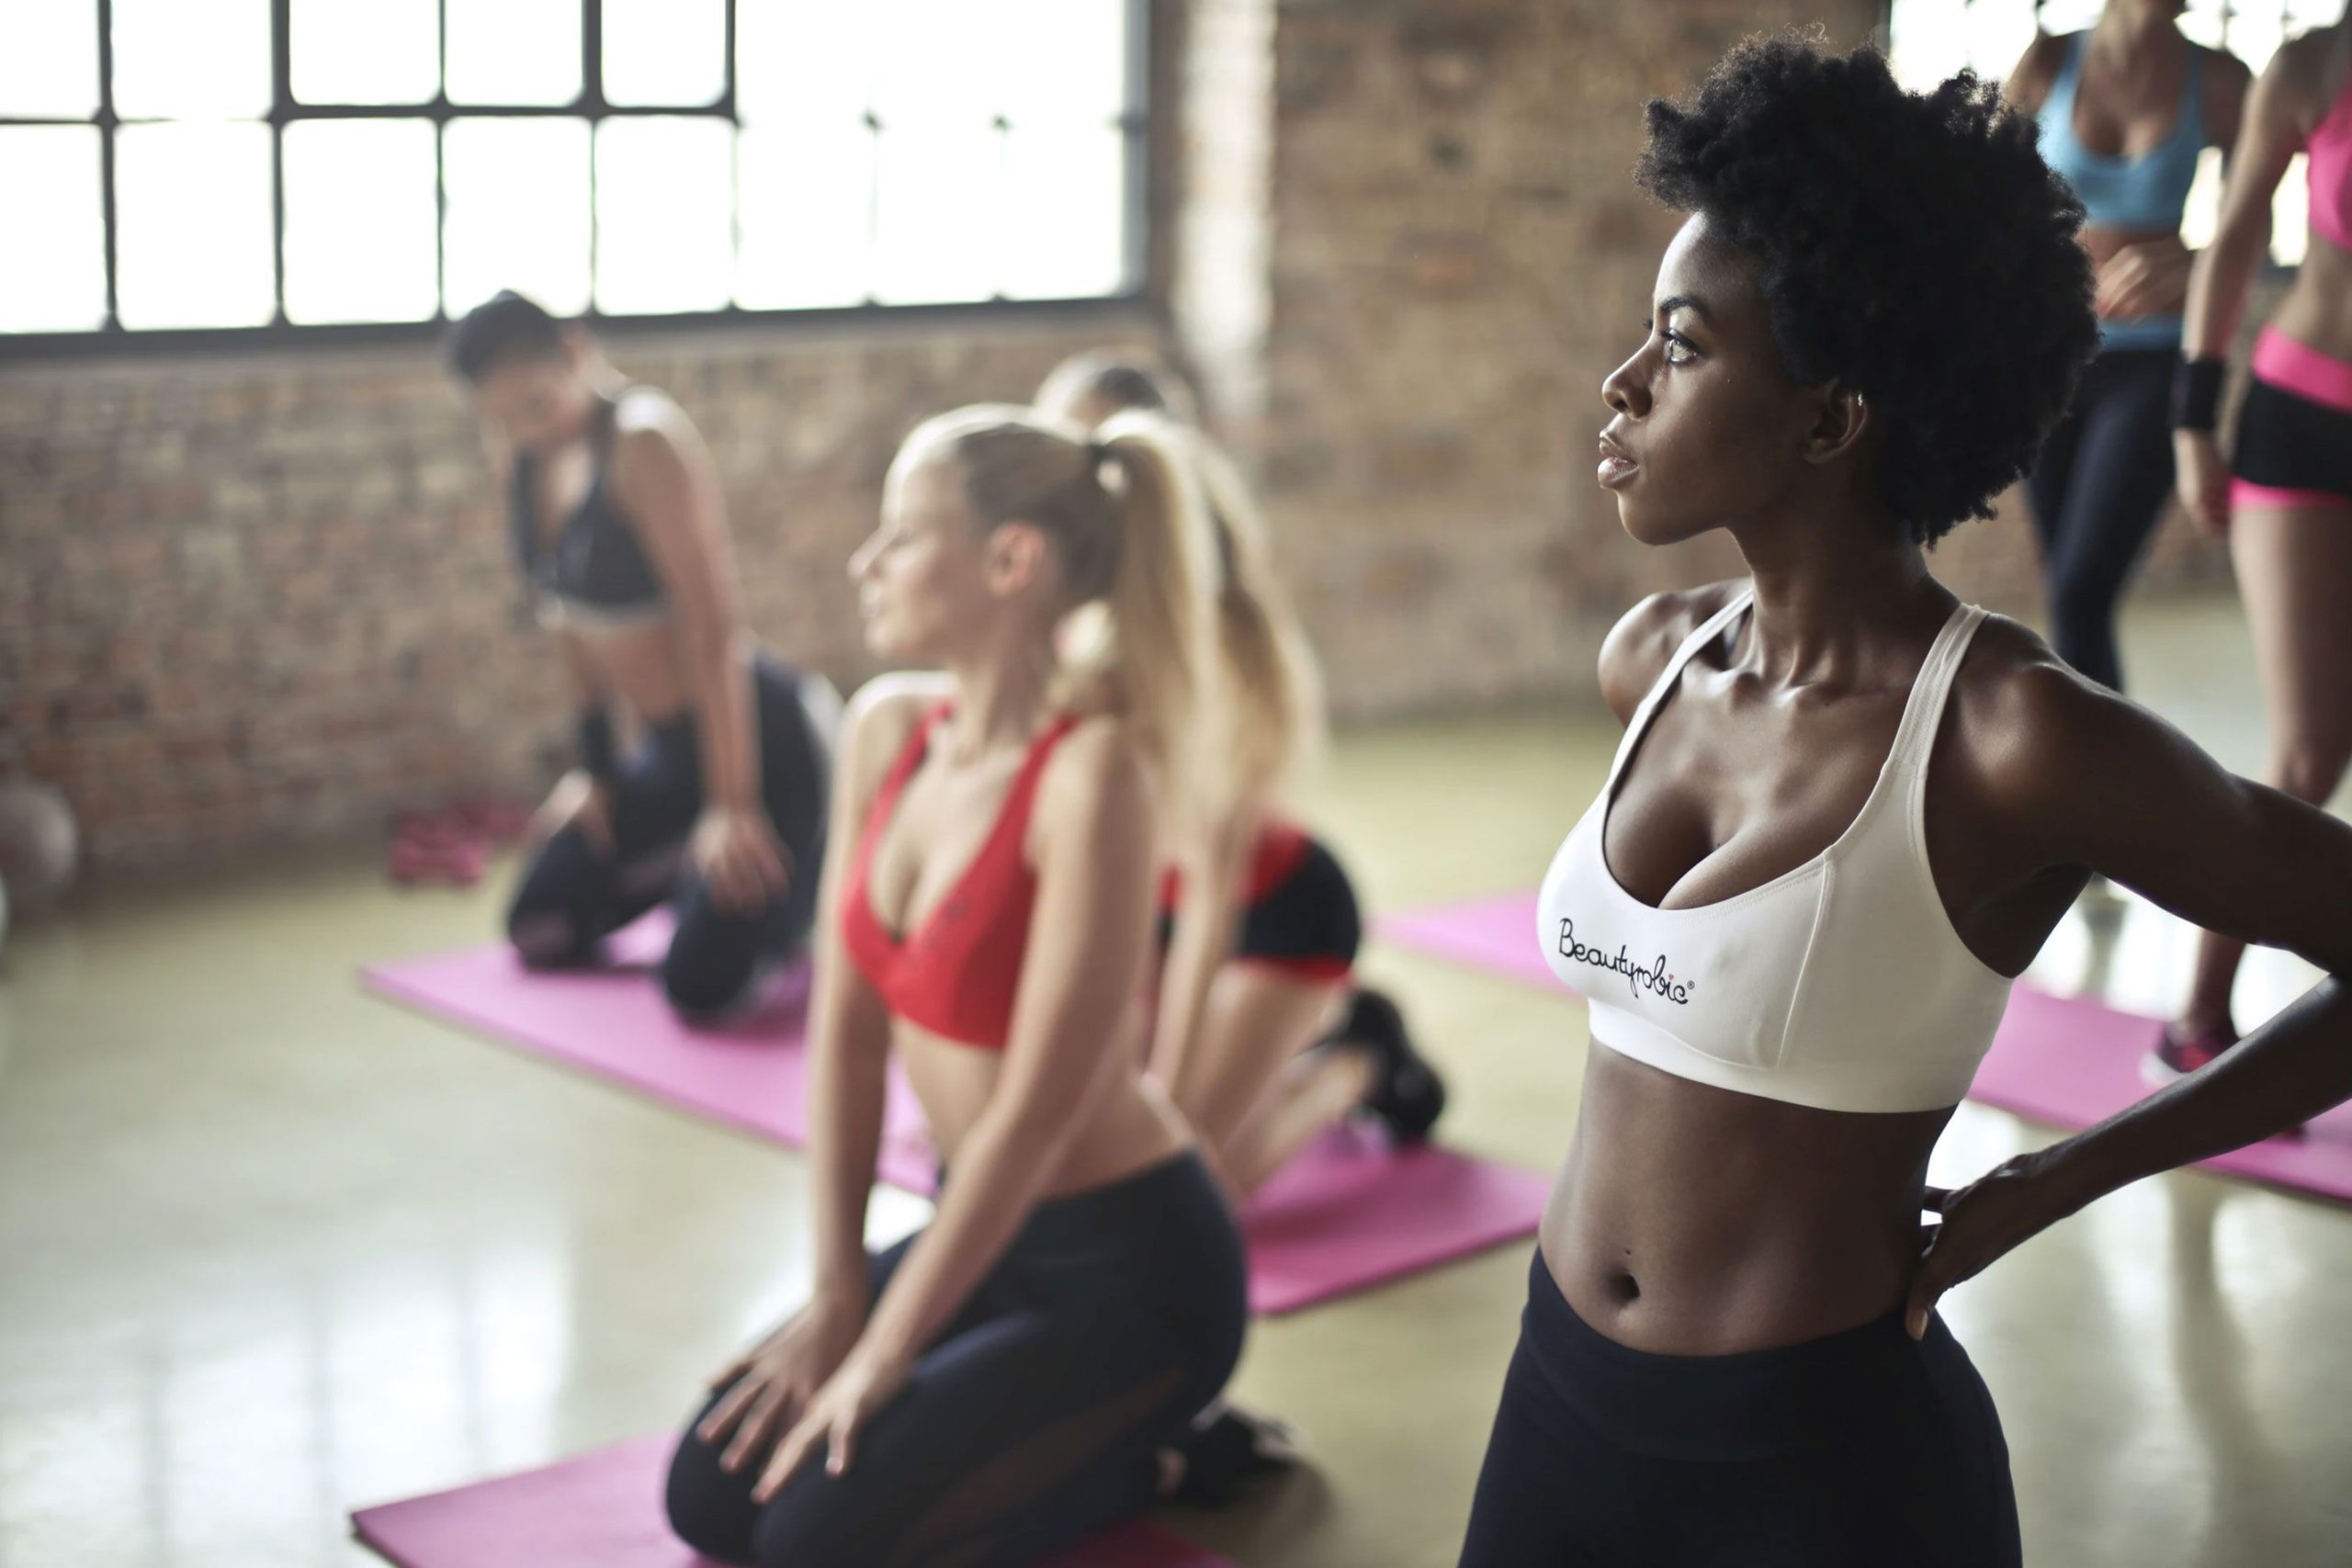 Episode 1: Beginners Guide To Yoga